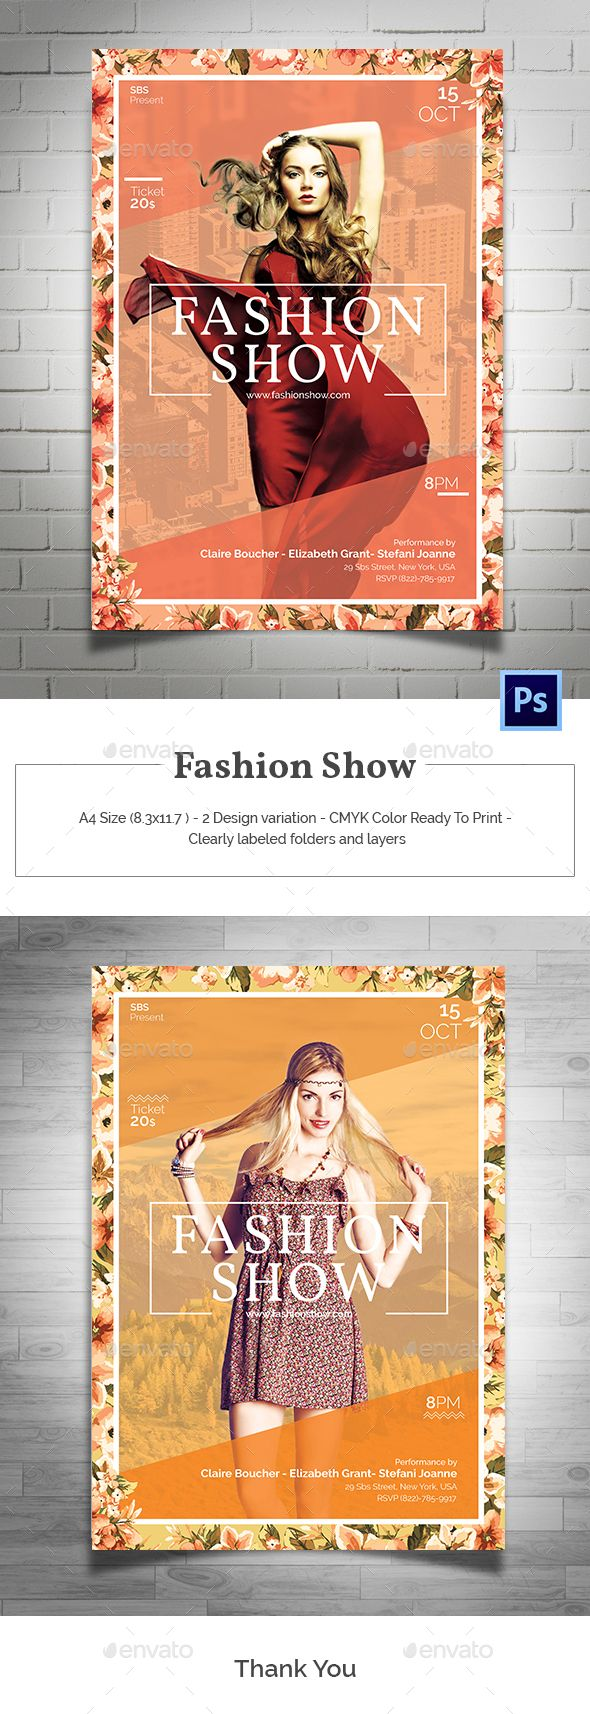 Fashion Show Flyer Template PSD. Download here: https://graphicriver.net/item/fashion-show-flyer/17388543?ref=ksioks